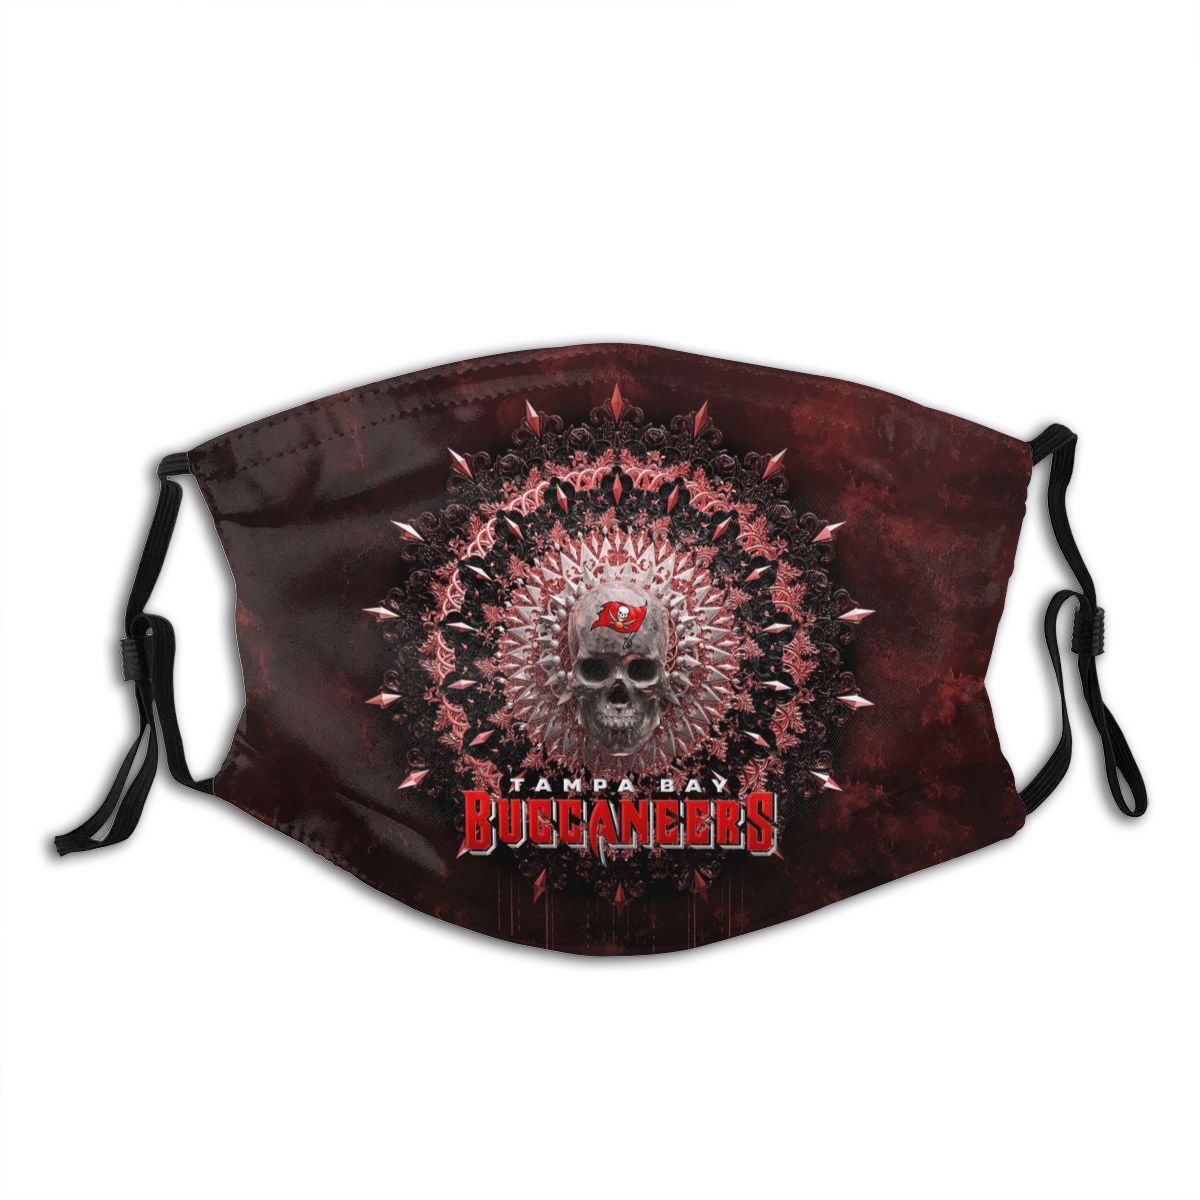 Buccaneers Adult Cloth Face Covering With Filter